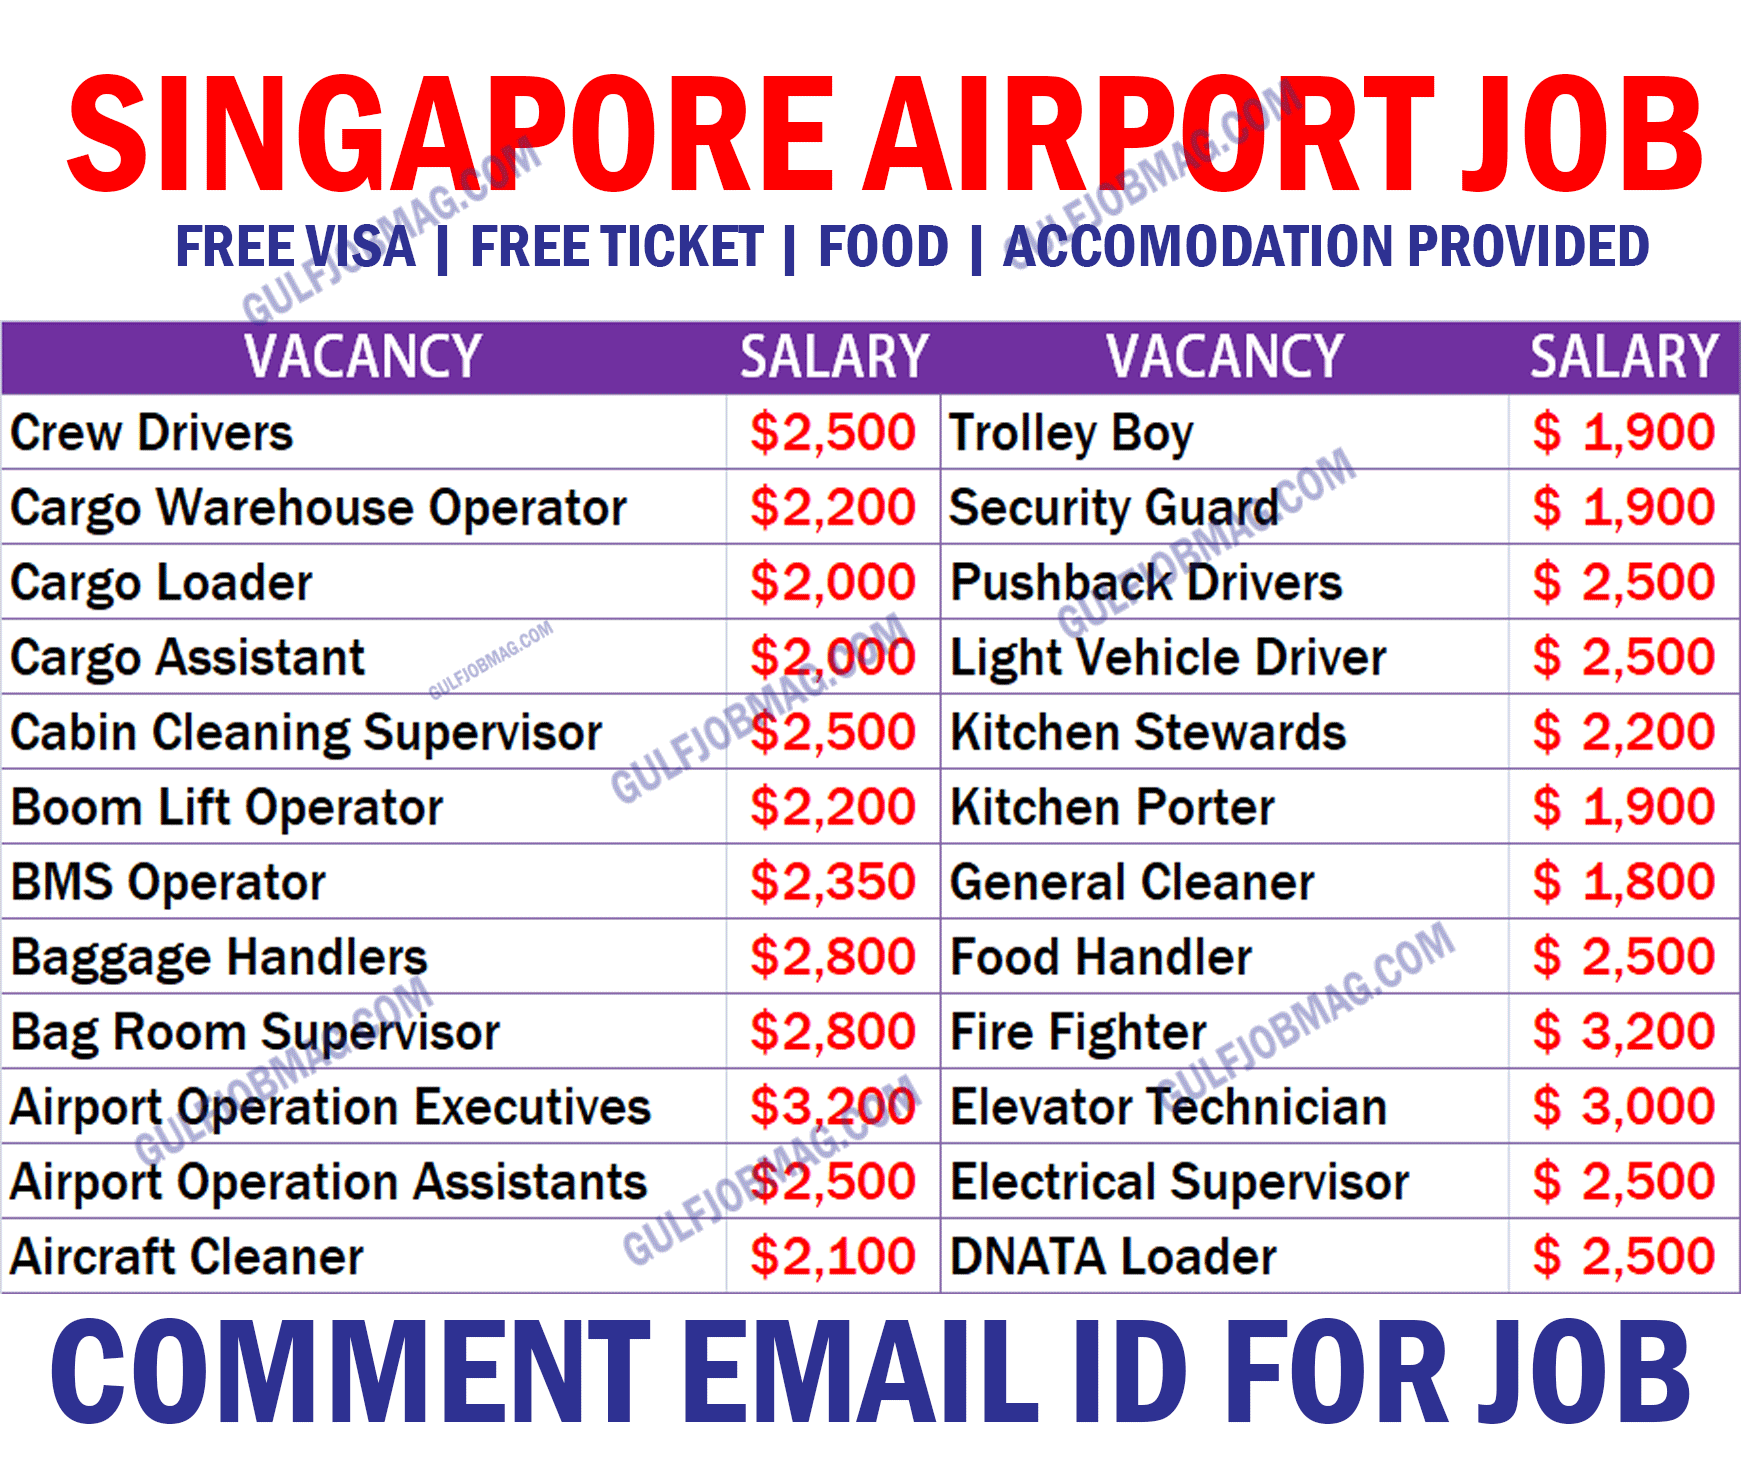 Singapore Airlines Staffs Hiring Now Urgent Demand